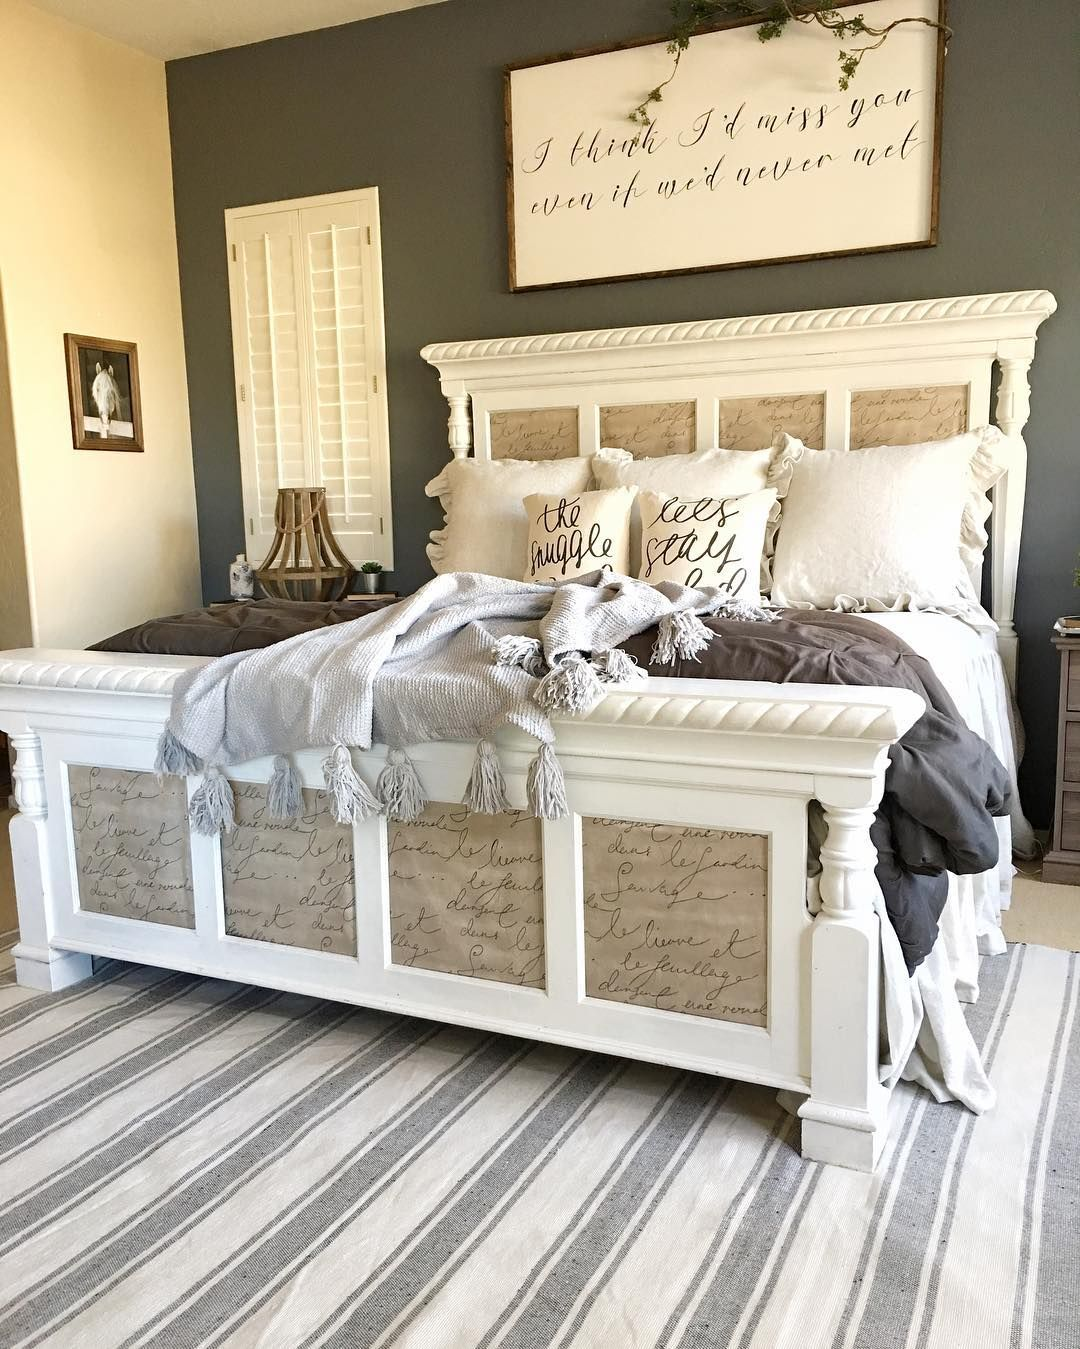 queen size bedding support mikos allimg mirror liberty white transitional full kensington headboard frame of metal storage group upholstered bedroom dexter leather tall brown sleigh hb company headboards collection ii furniture burlap tan winged fashion hypnos iteminformation